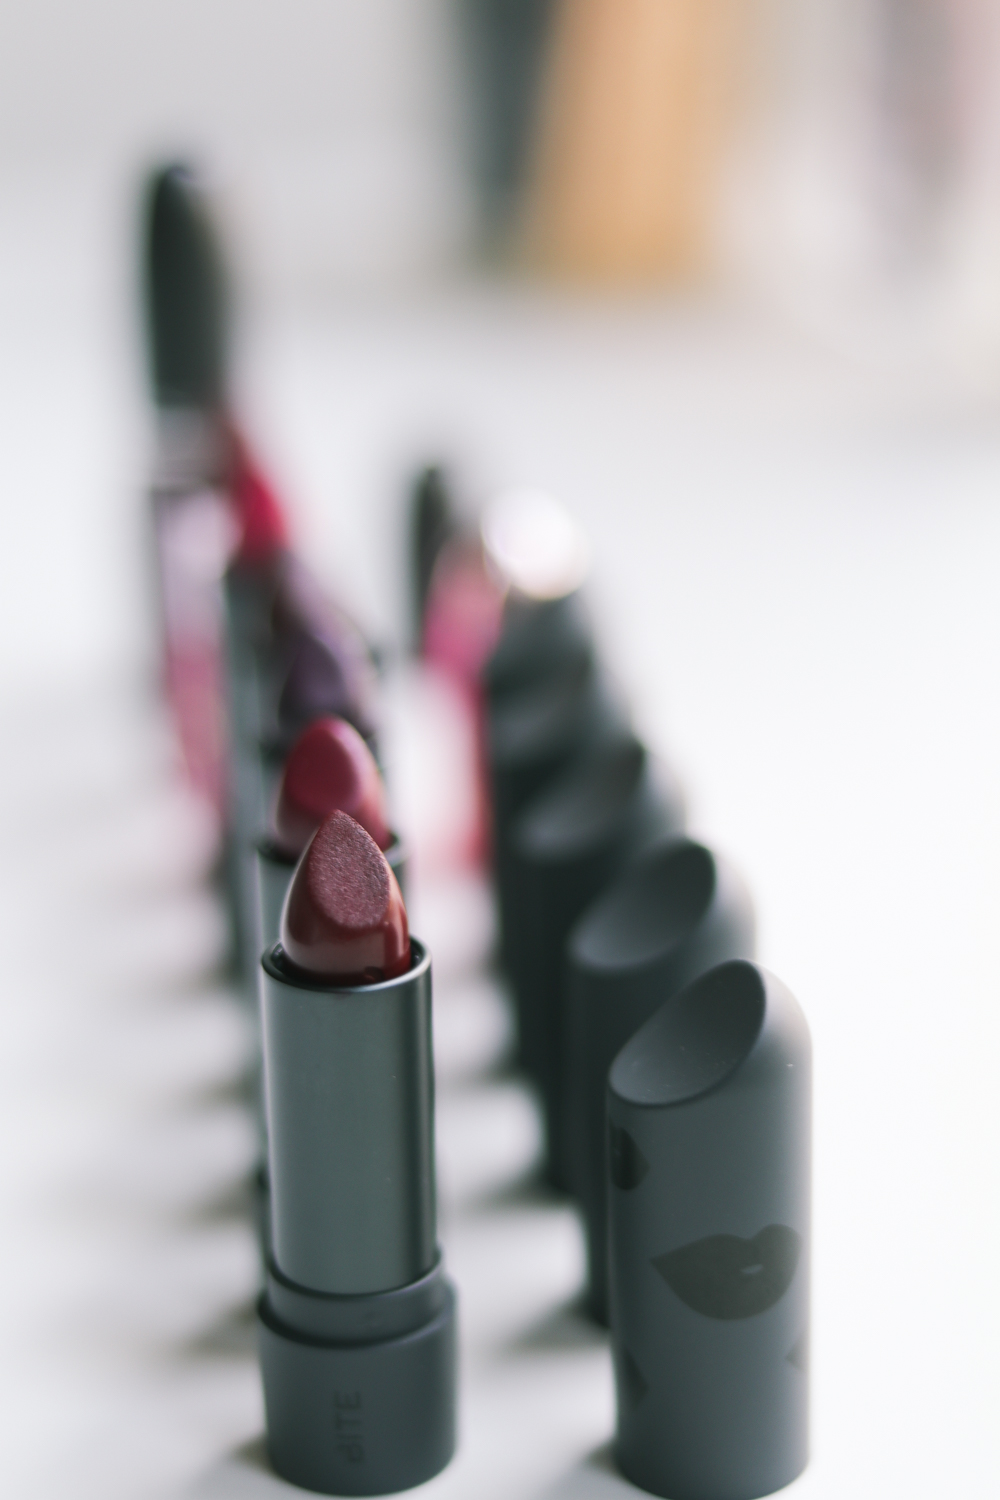 I love a classic, deep red lipstick. Especially during fall. This is a great list of lipsticks, perfect for that fall look! Favorite Red Lipsticks for Fall // CatherineChicotka.com